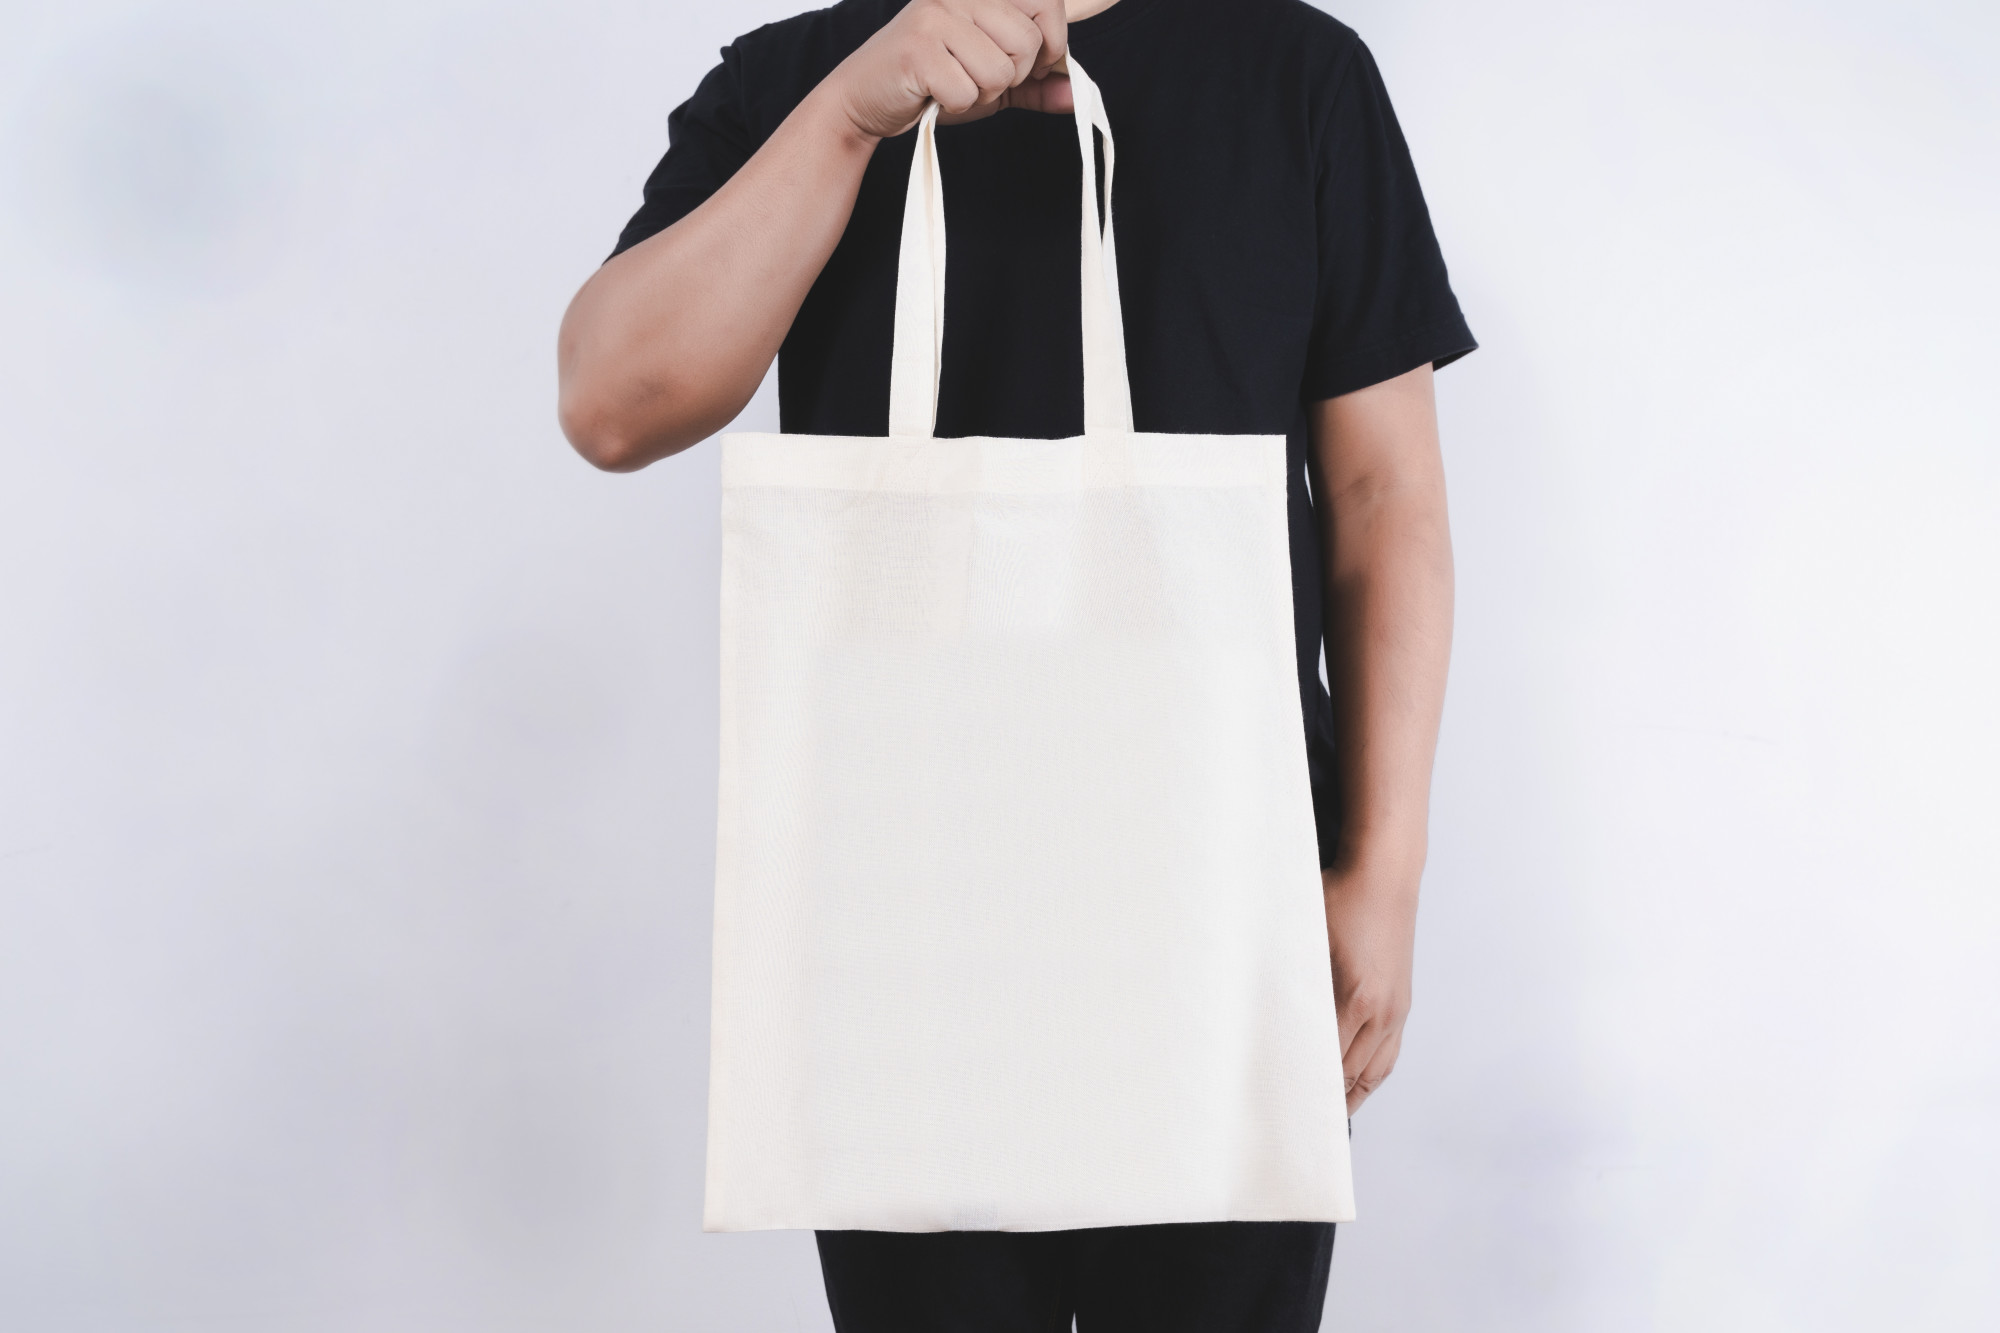 Going Green: 3 Ways Our Reusable Canvas Tote Bags Help the Environment